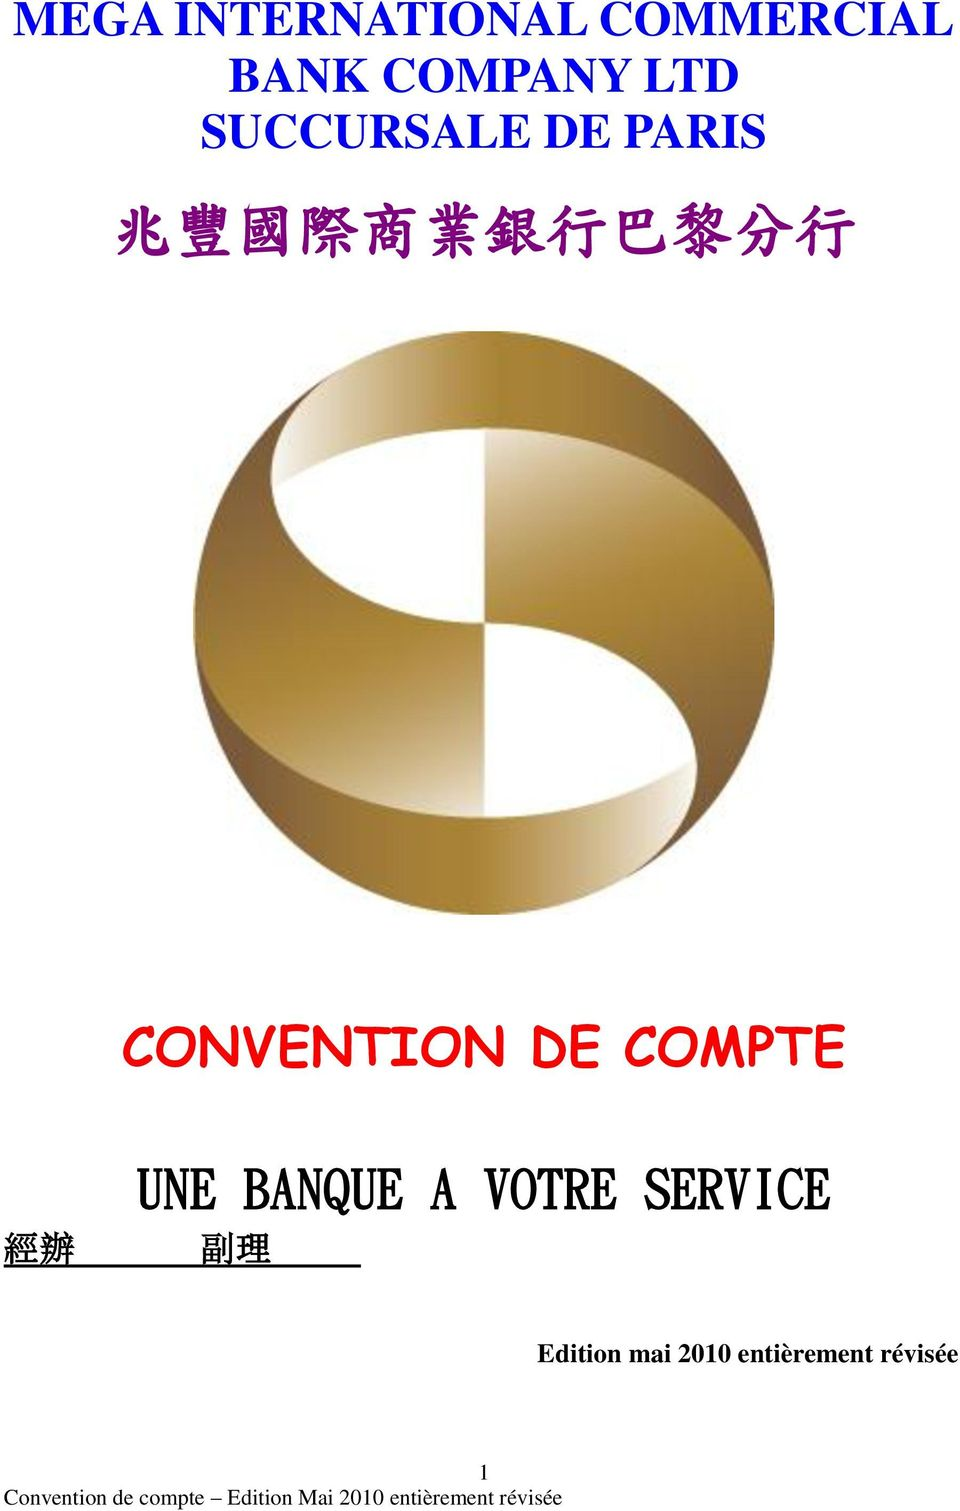 CONVENTION DE COMPTE 經 辦 UNE BANQUE A VOTRE